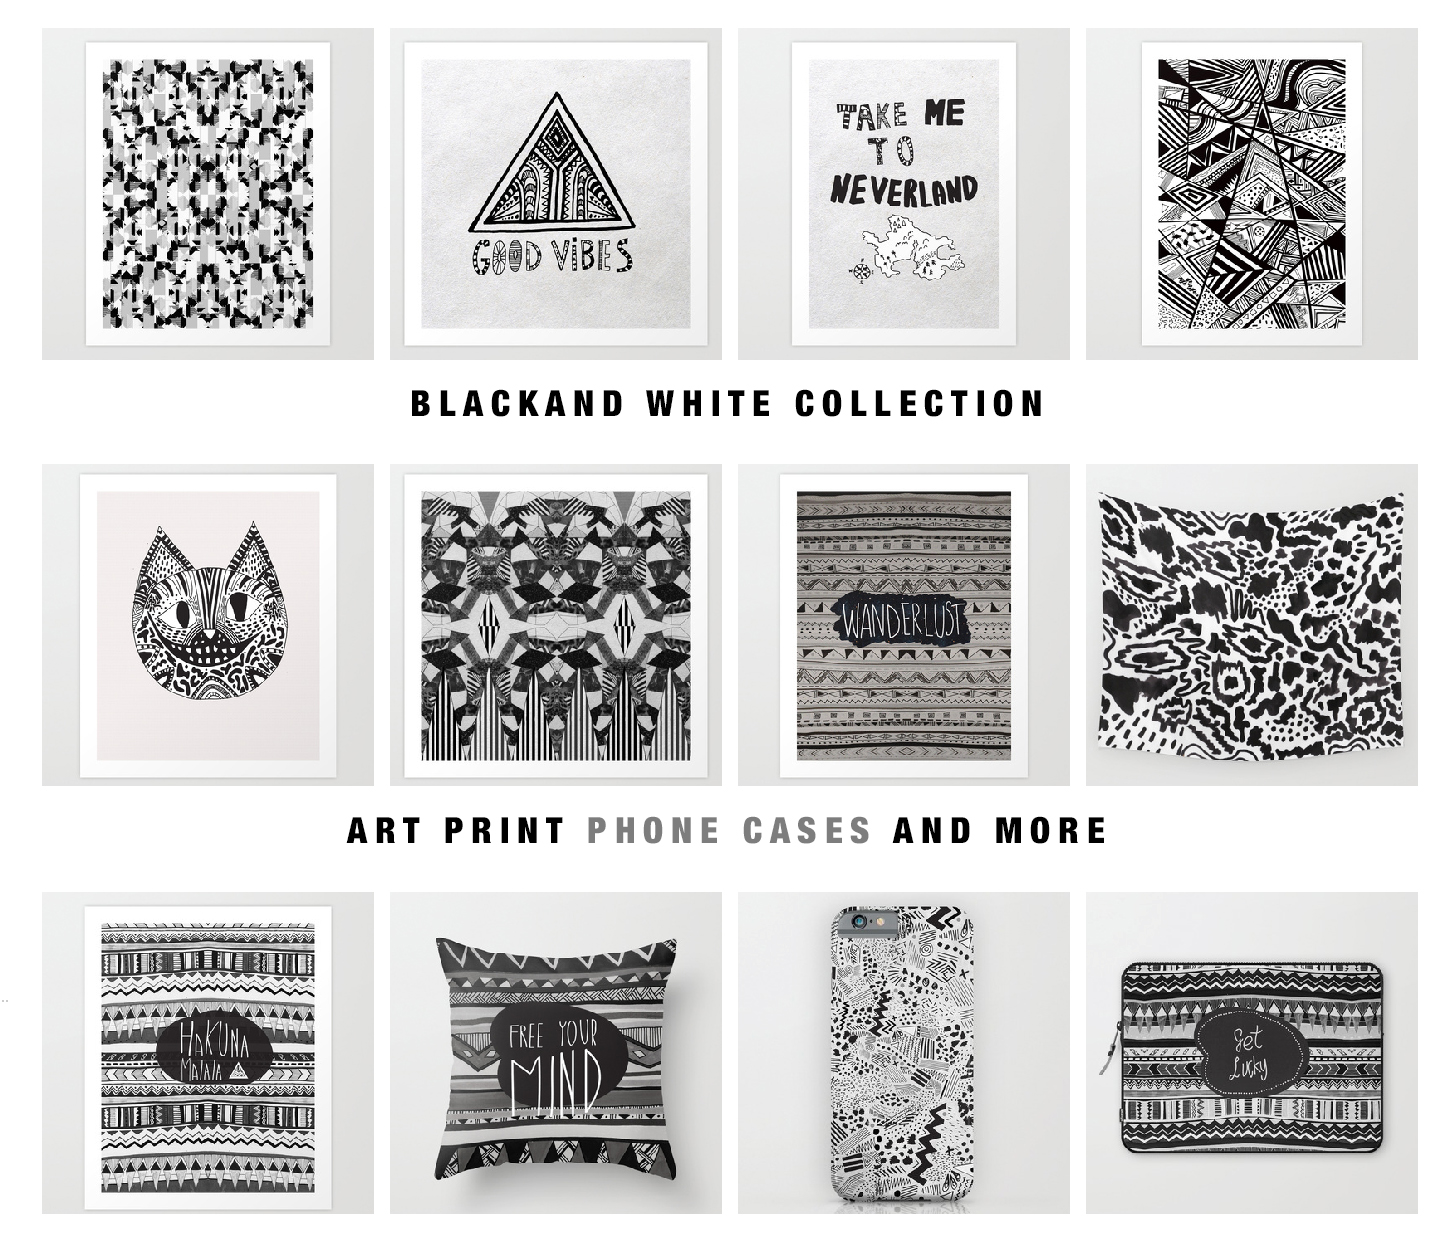 print pattern axtec tribal trend 2018 2017 typography graphic wanderlust art prints phone cases and more society6 black and white collection